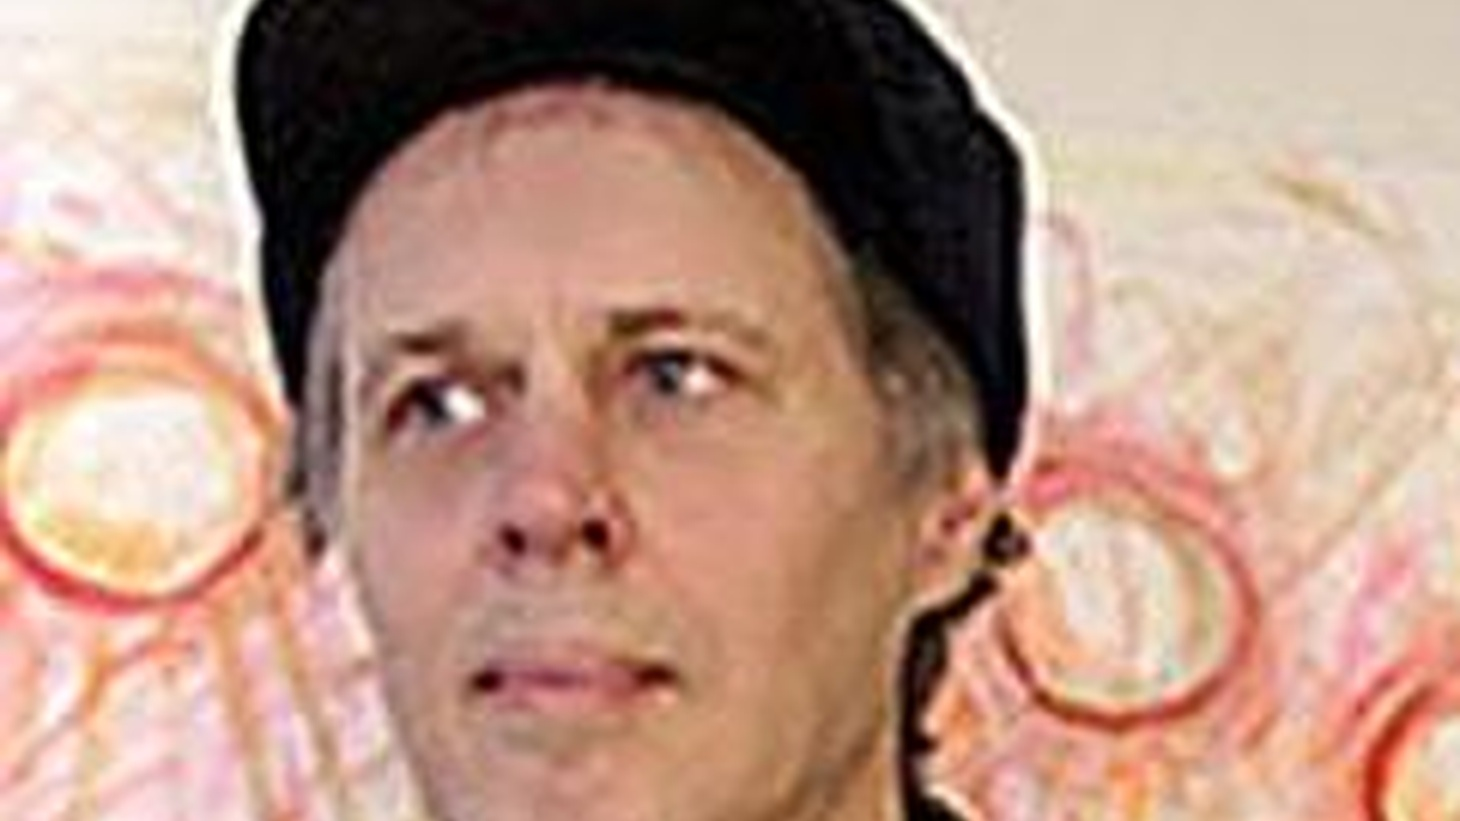 Television's singer and guitarist Tom Verlaine brings his own work to Morning Becomes Eclectic.